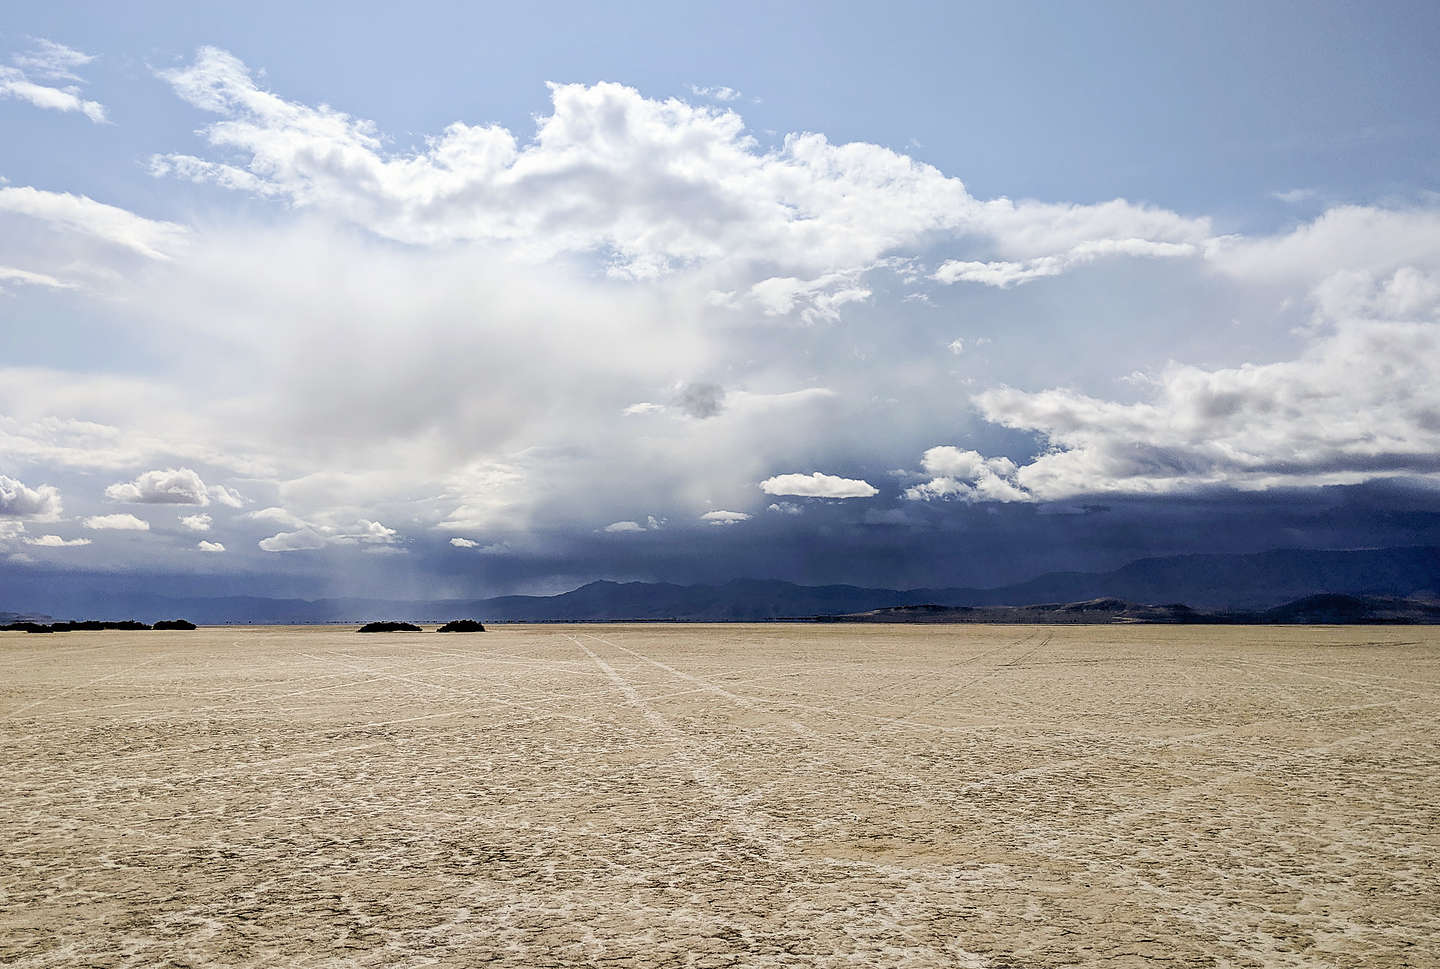 Storm's a brewing on the playa